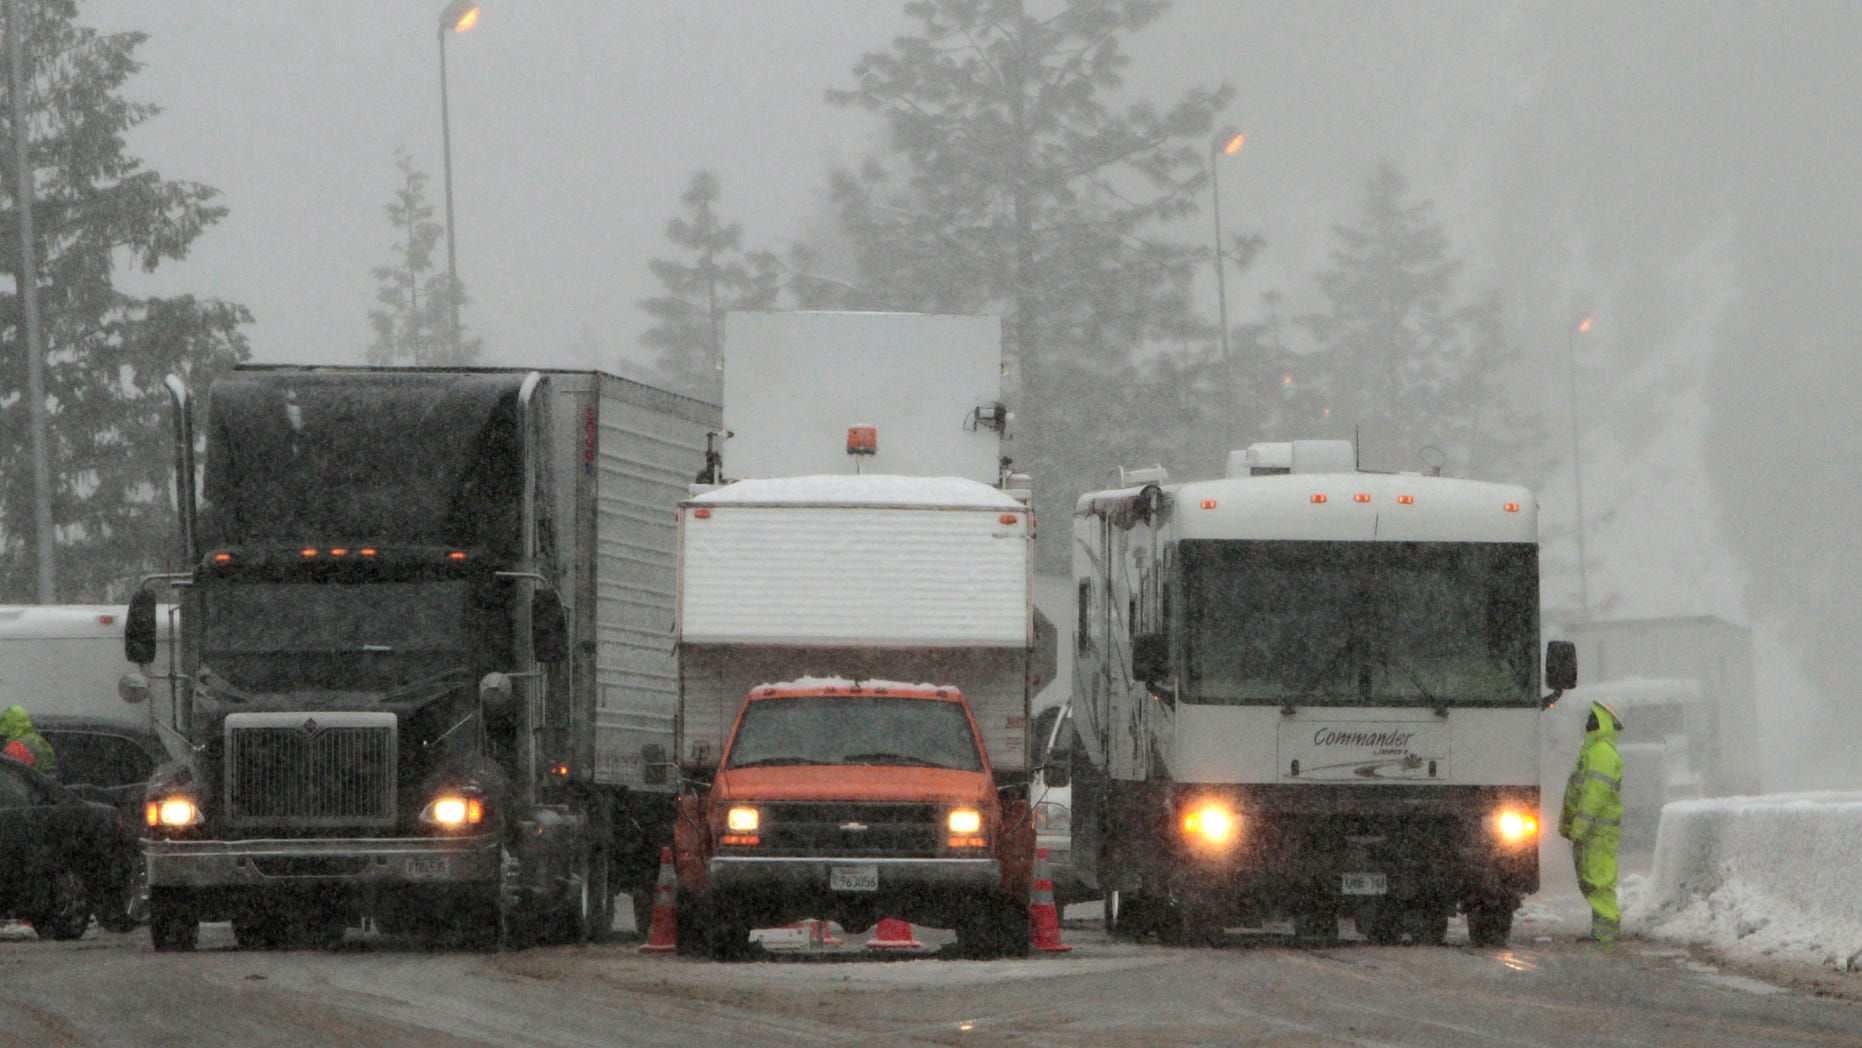 Vehicles pass through a California Departement of Transportation chain inspection stop on eastbound Interstate 80 near Alta, Calif., Thursday March 24, 2011. (AP)